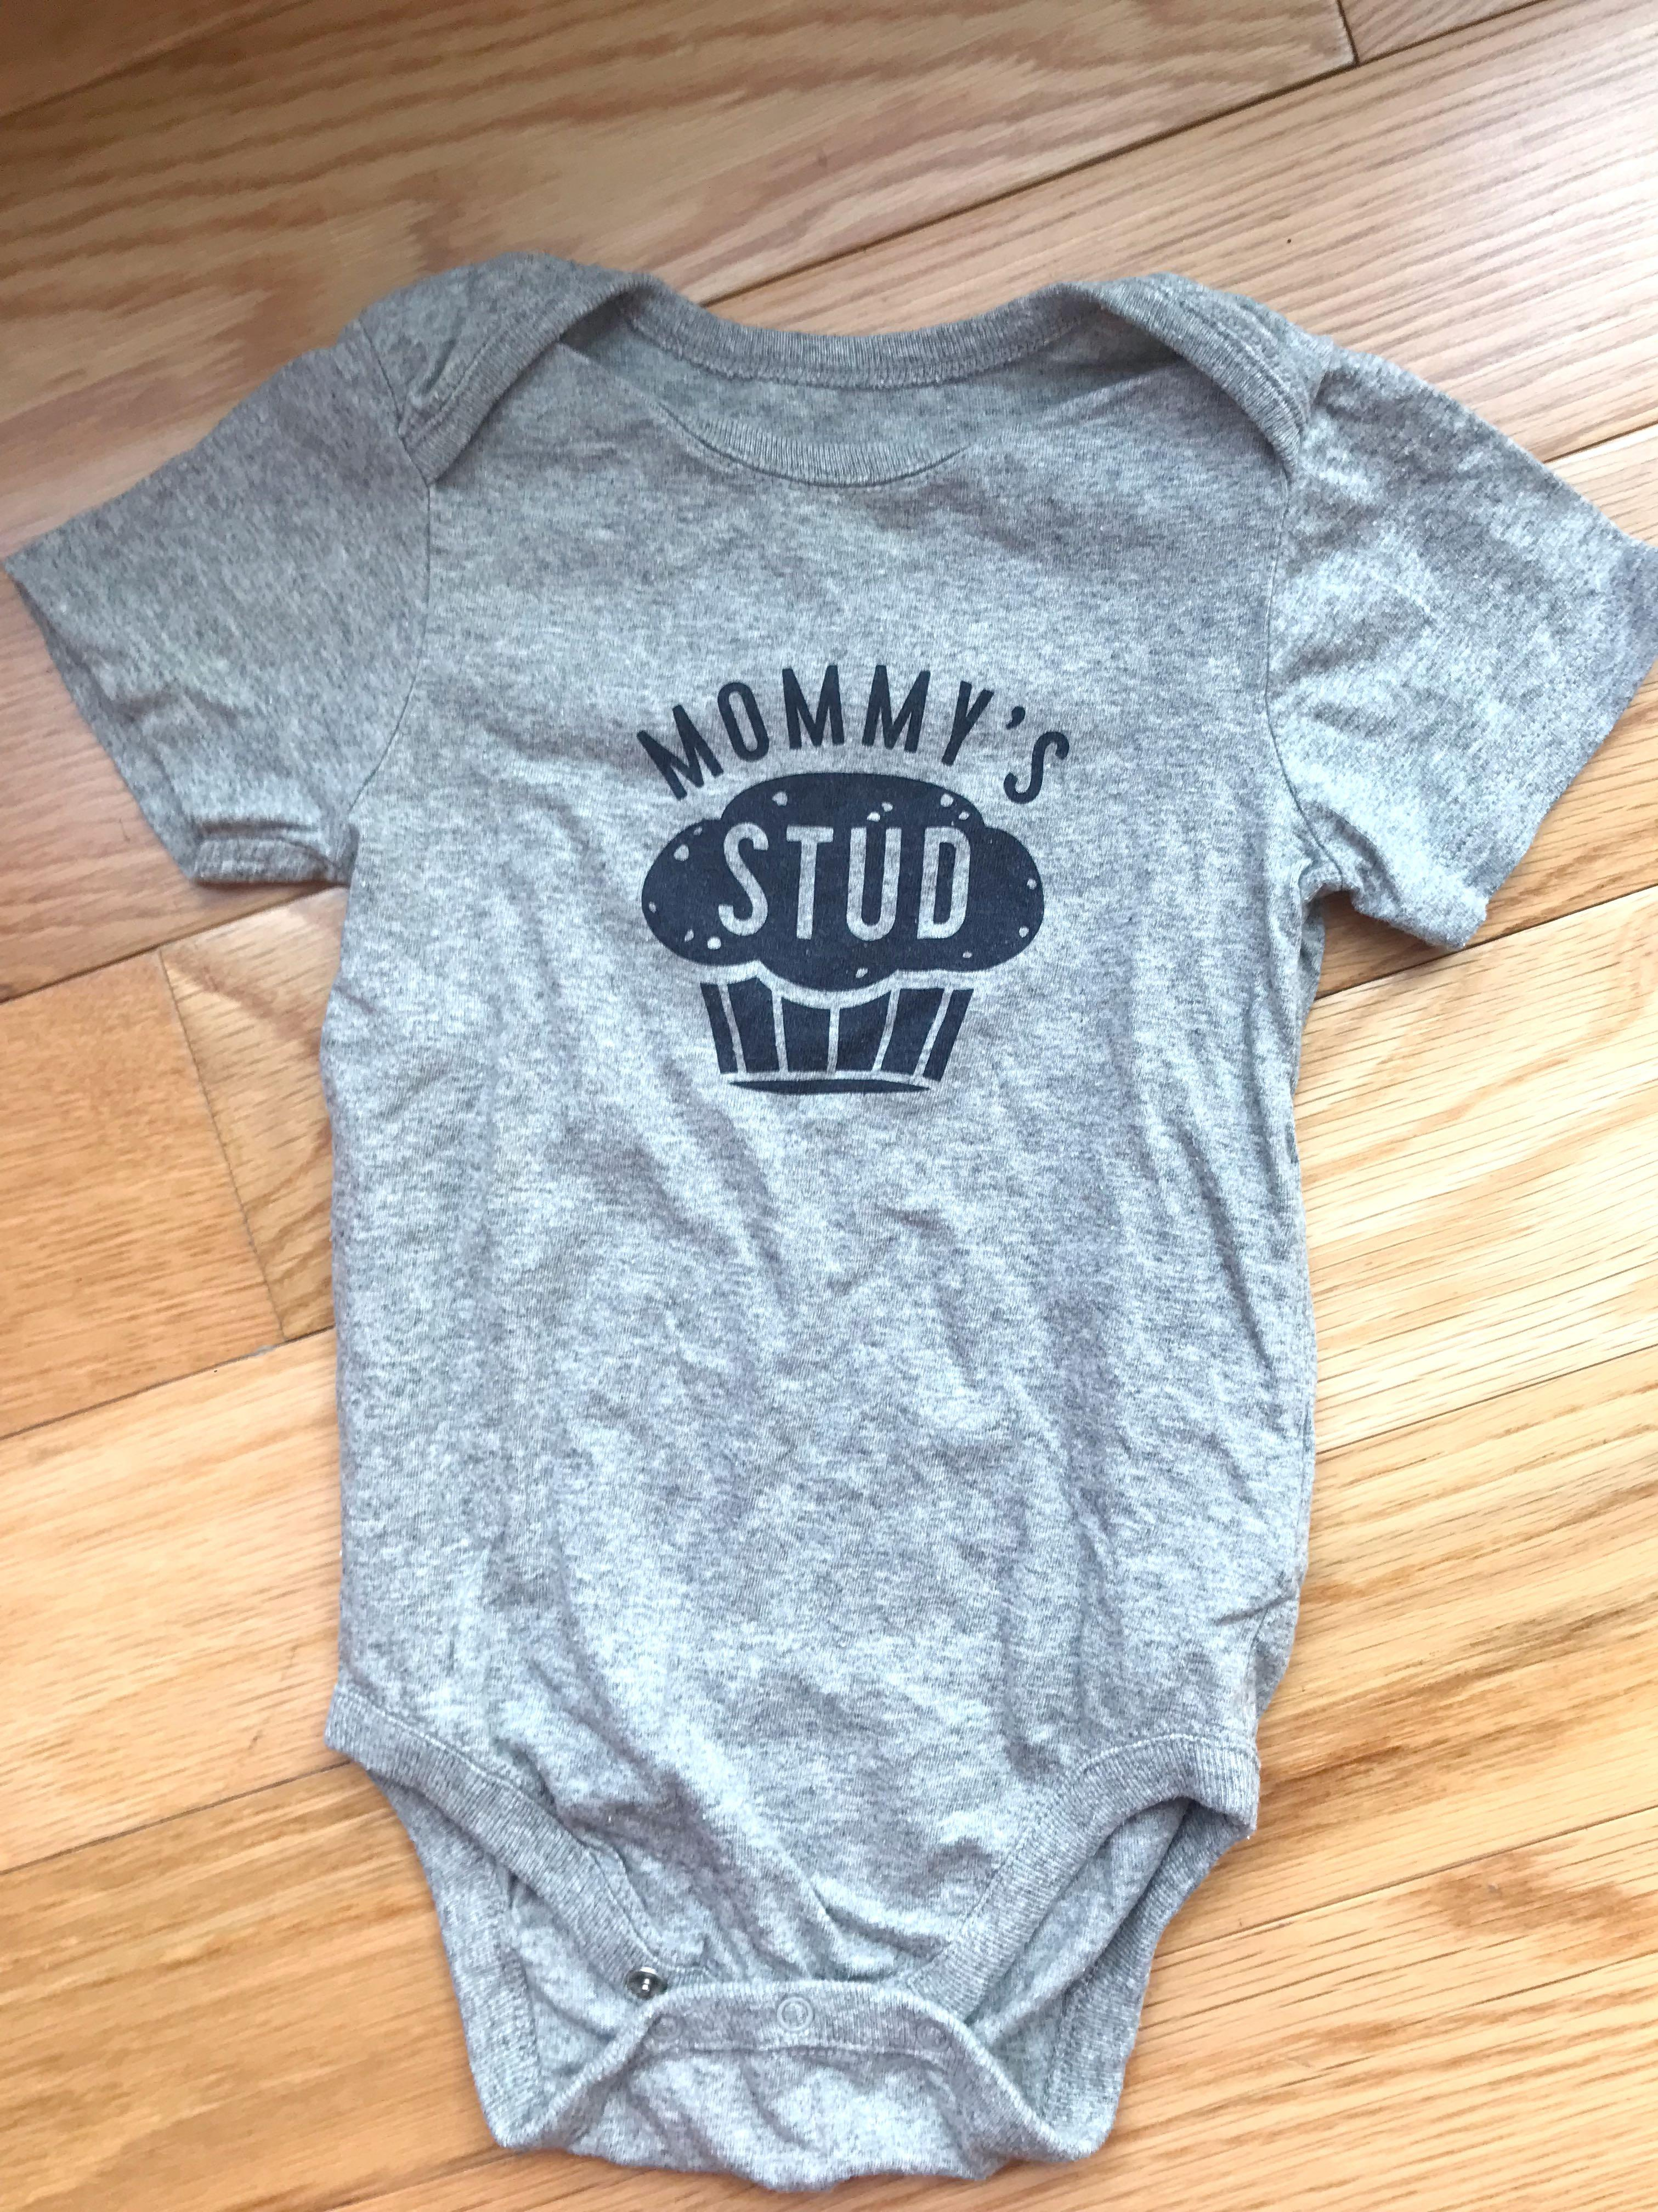 The Children's Place Mom's Stud Muffin Bodysuit